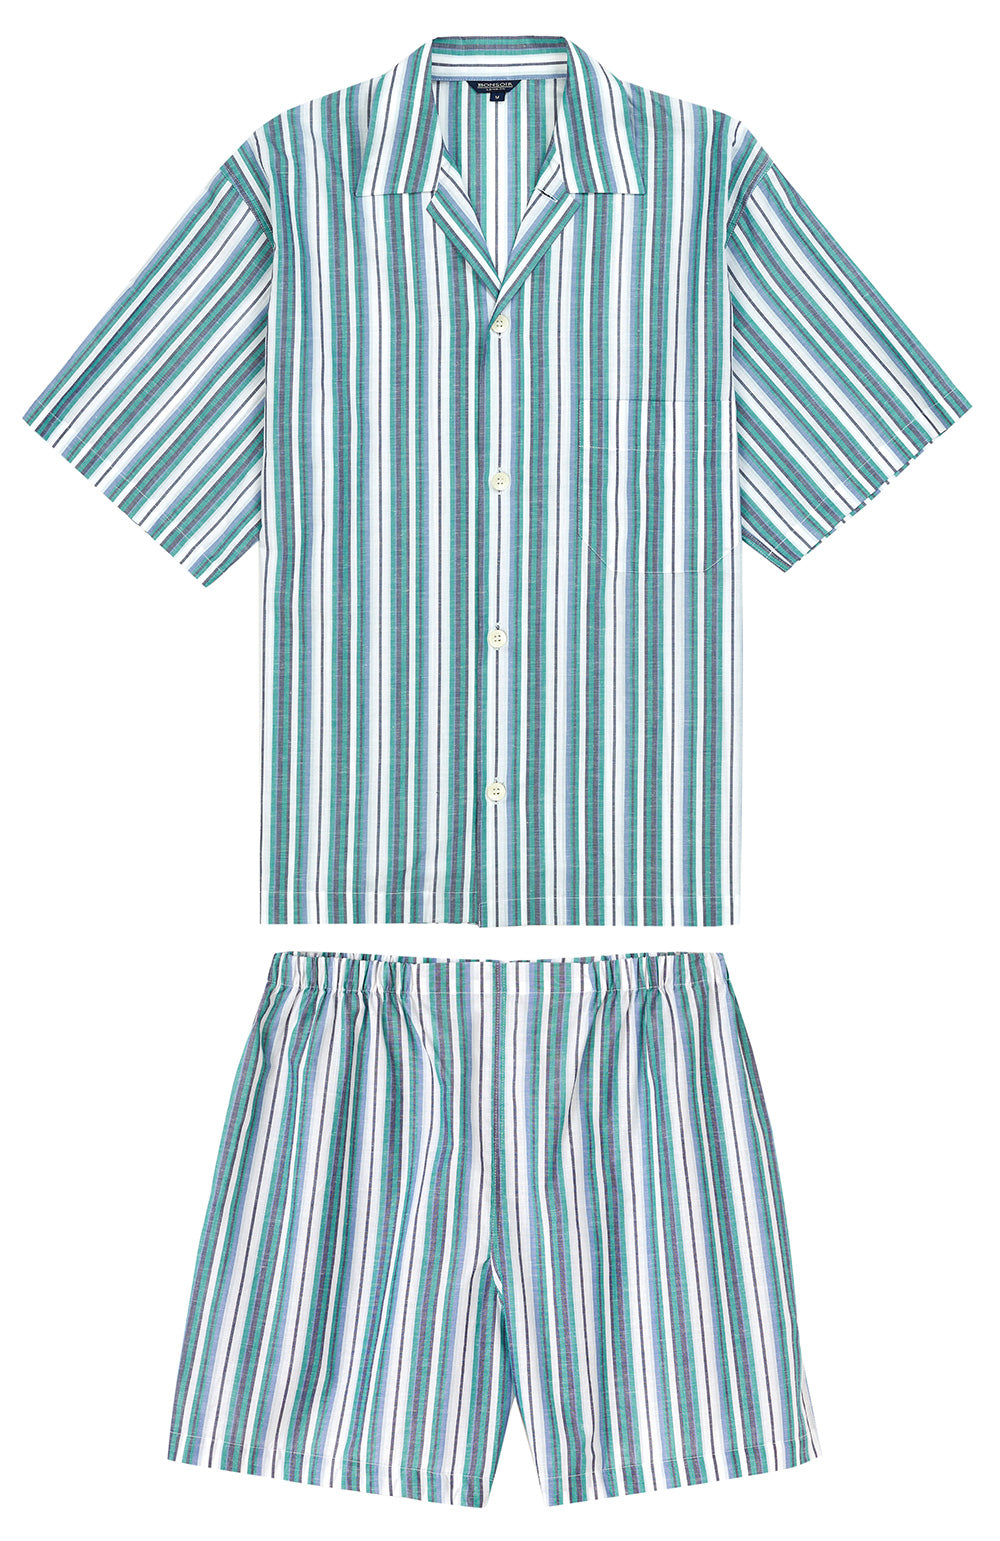 Regatta Green Stripe Short Pyjamas | Bonsoir of London